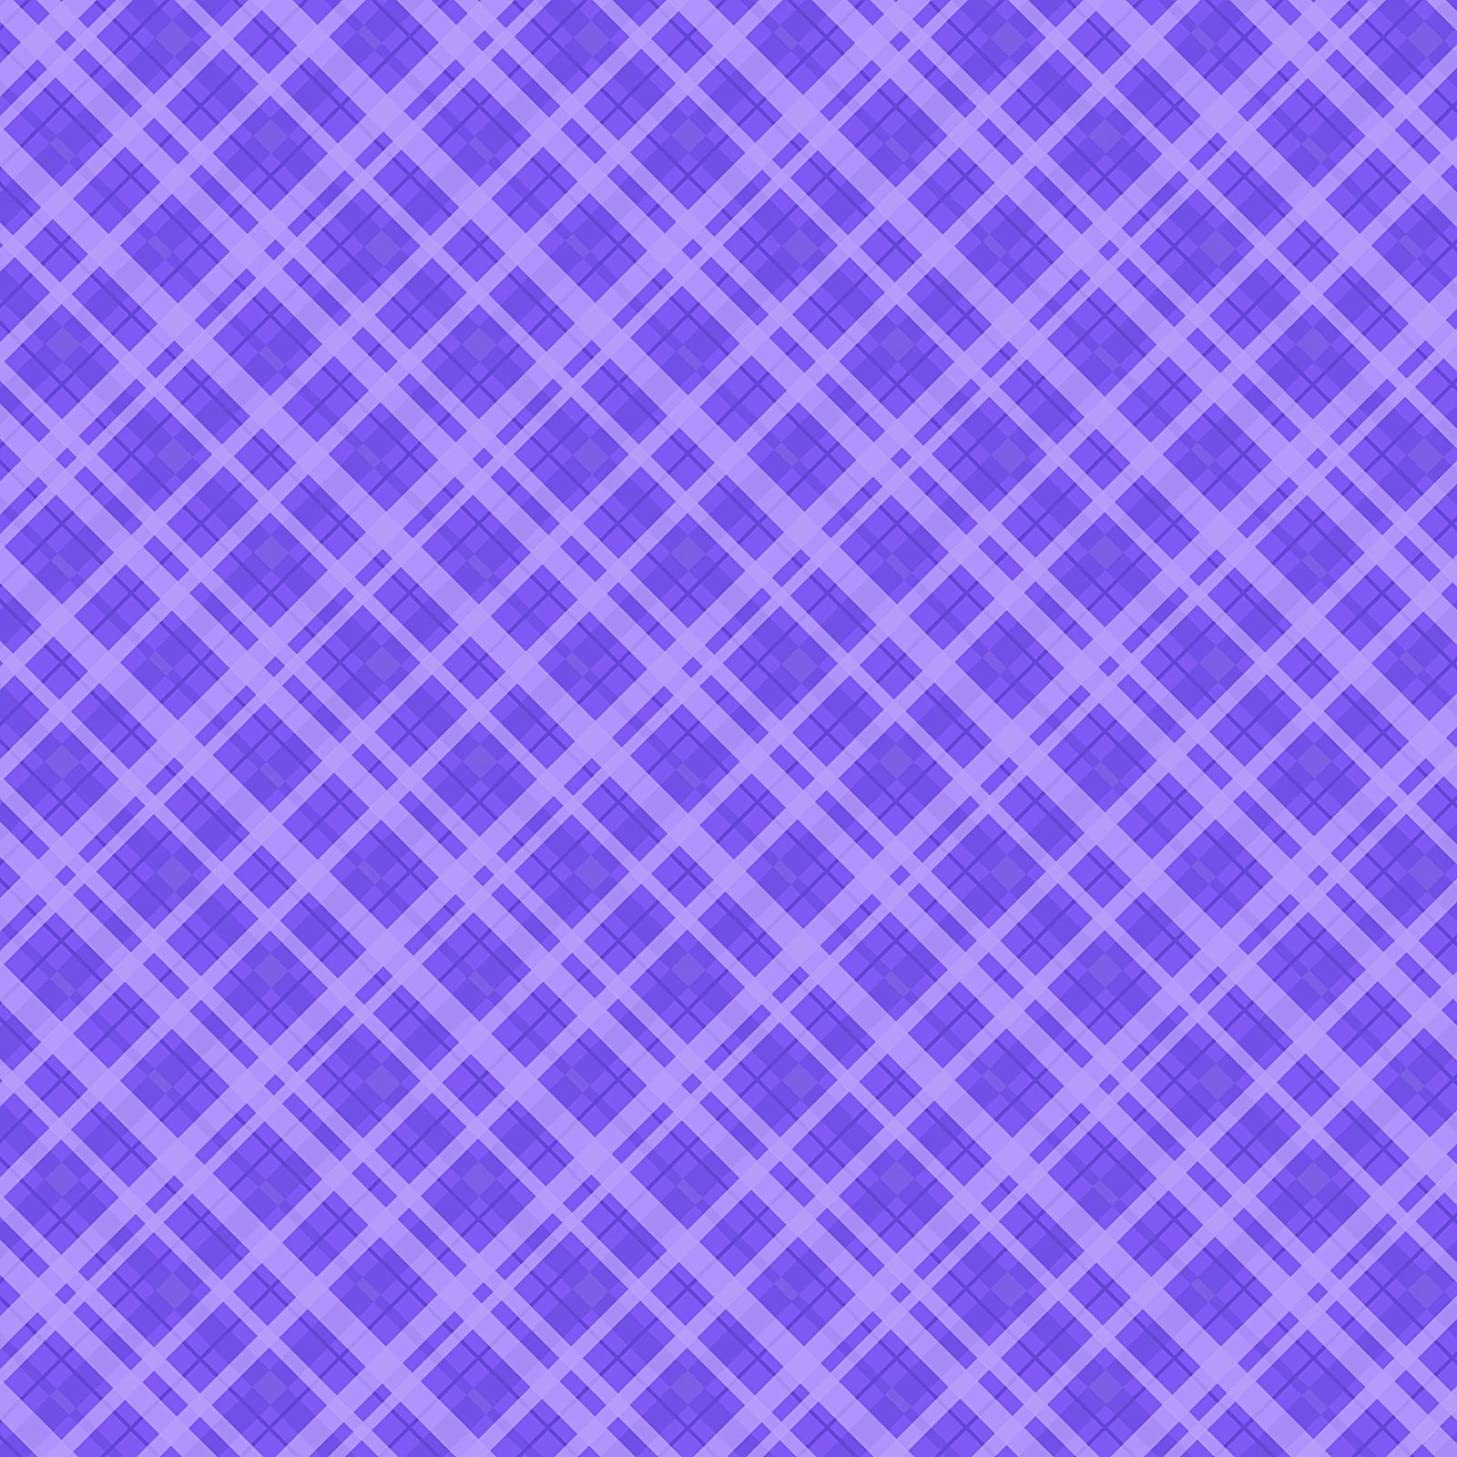 American Crafts Core'dinations 12 Pack of 12 x 12 Inch Patterned Paper Purple Plaid,